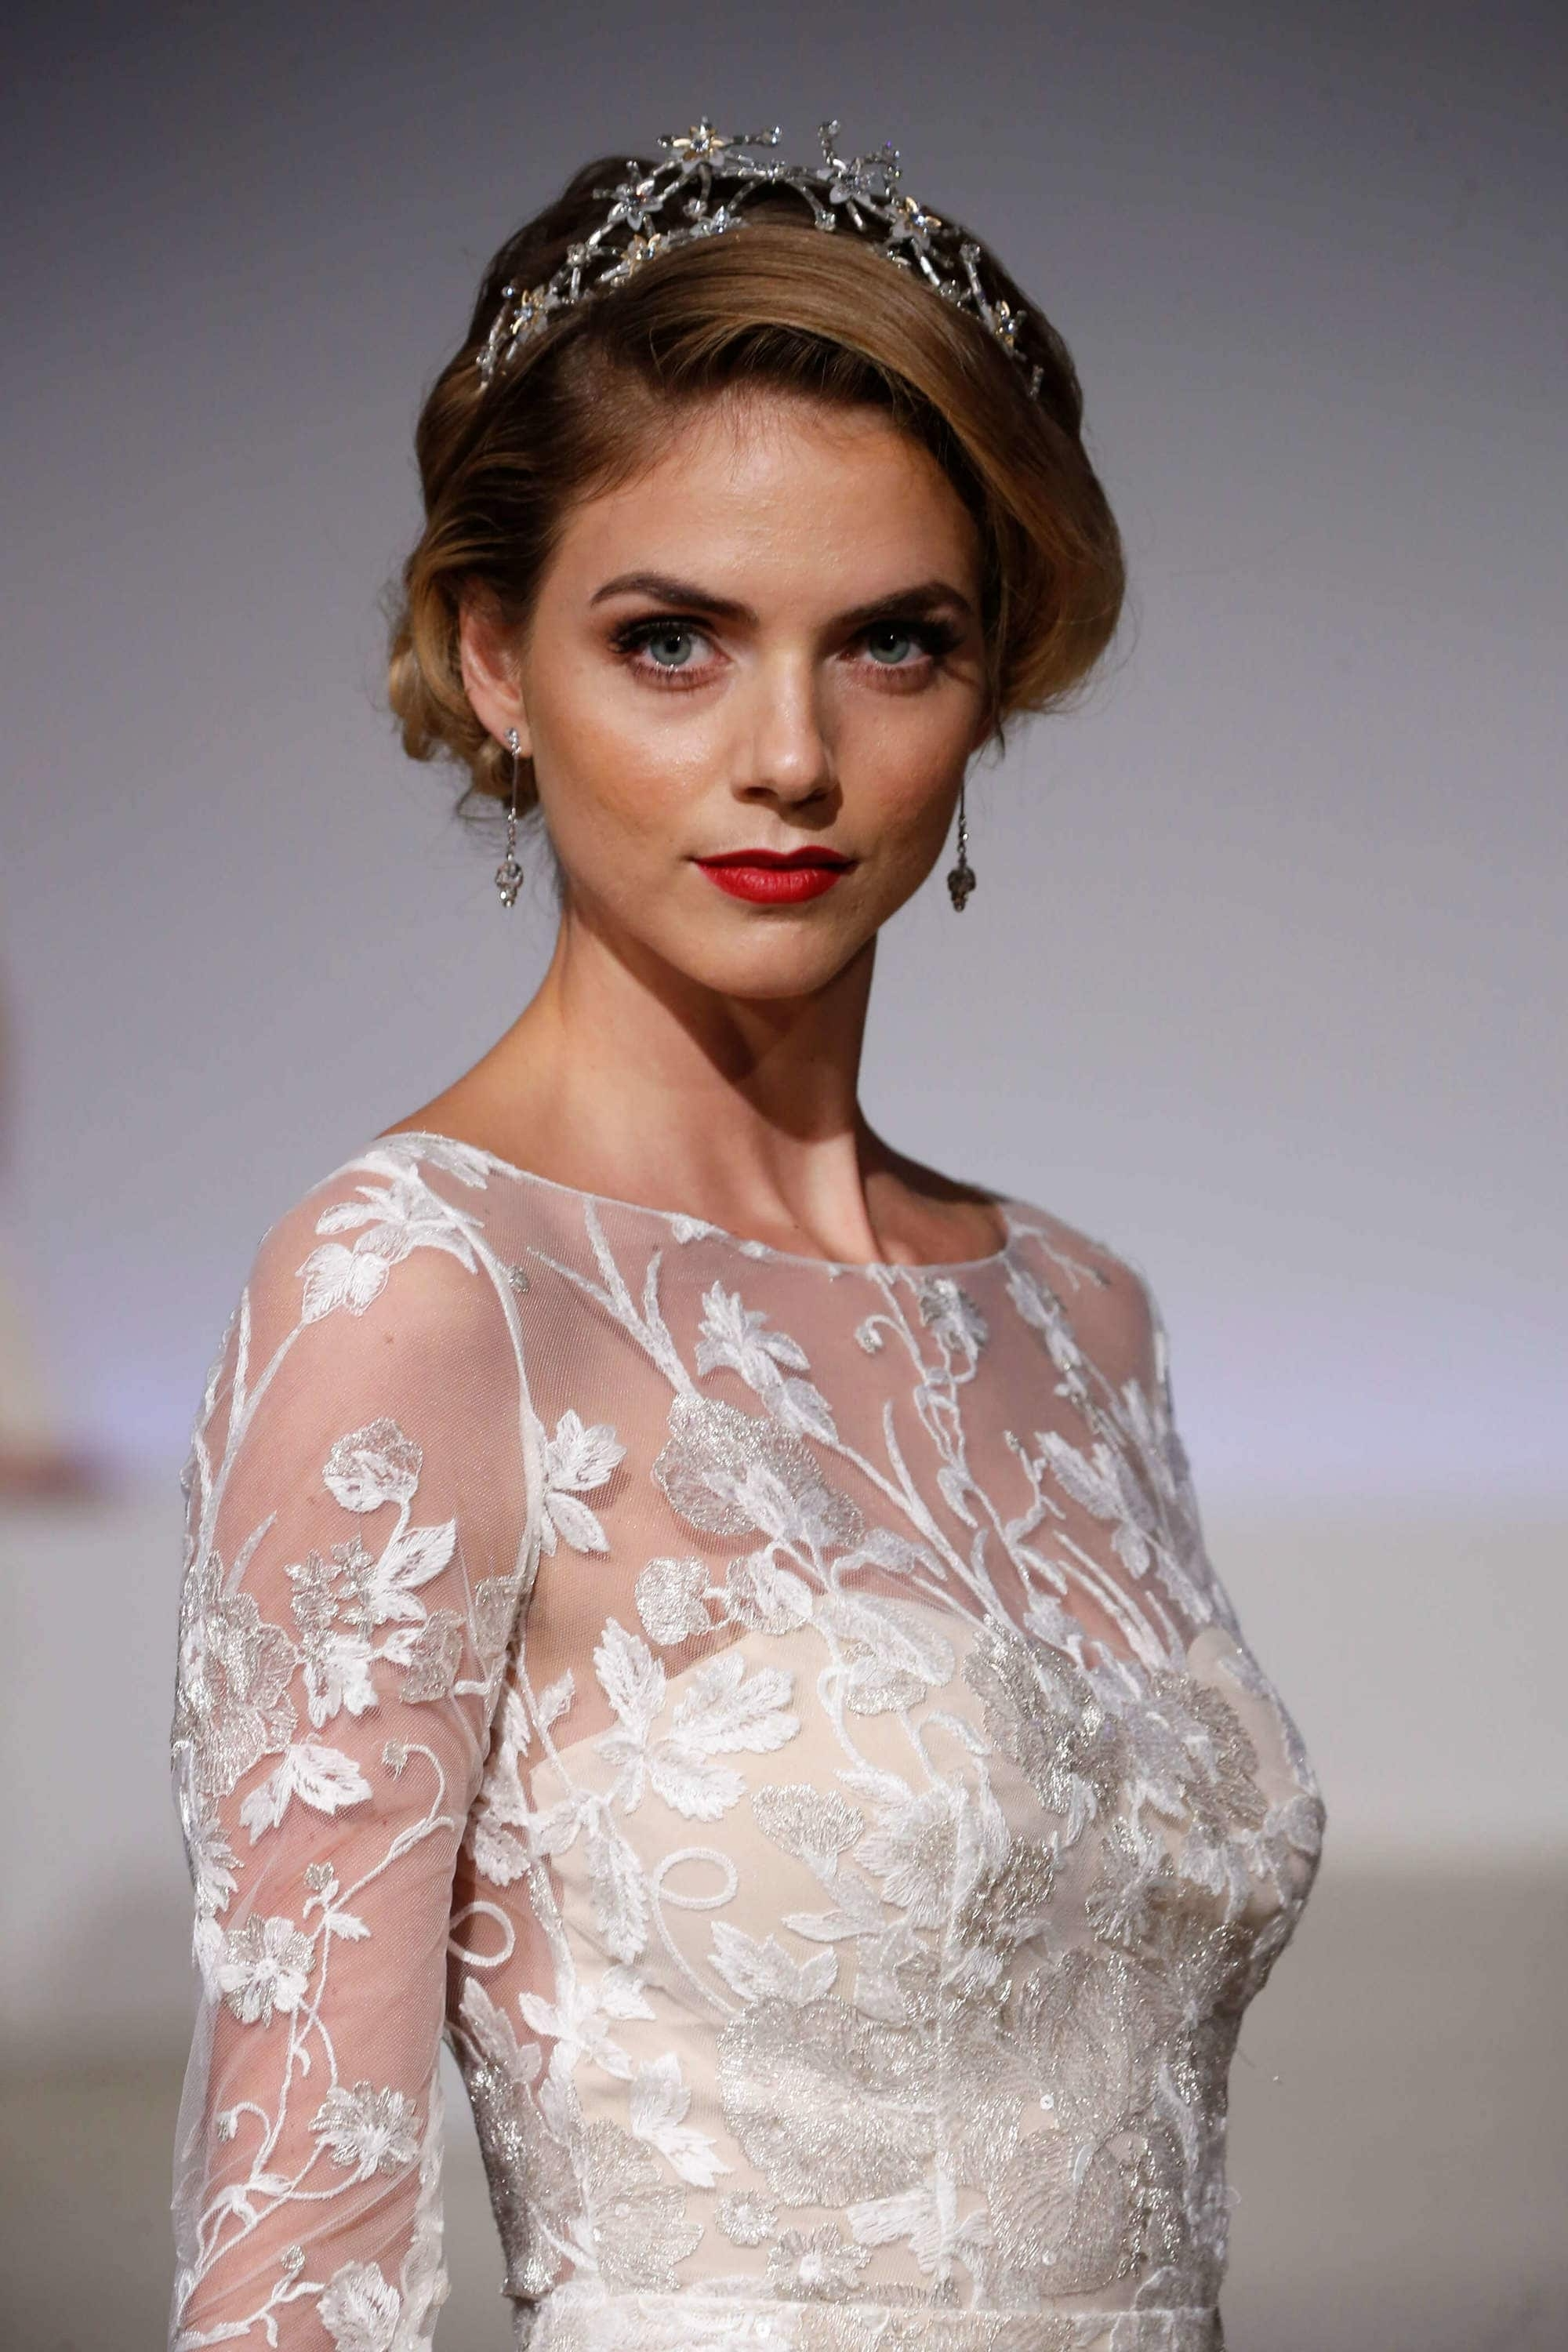 Most Recently Released Wedding Updos For Long Hair With Tiara For Wedding Updos For Long Hair: 30 Looks For Brides For All Seasons (View 10 of 15)